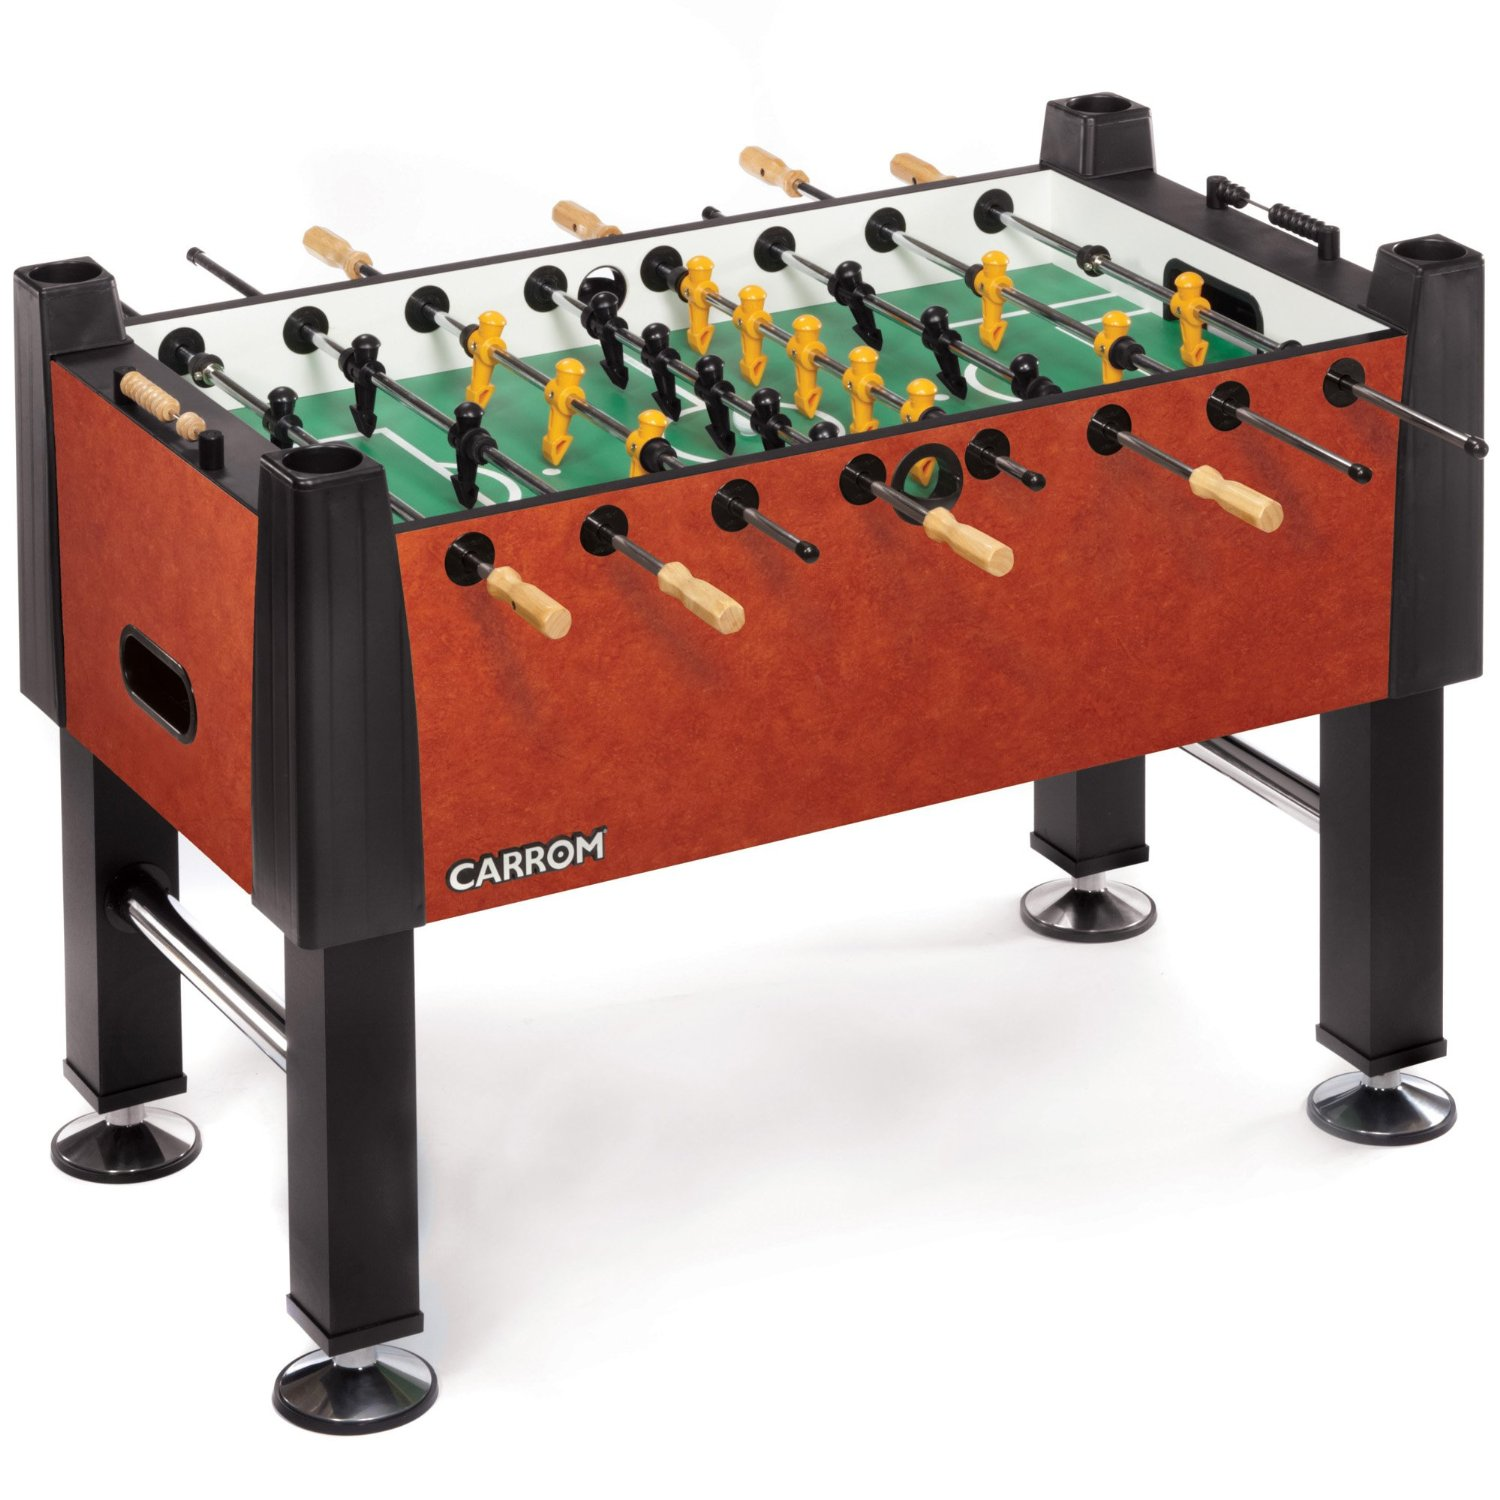 Carrom signature foosball table refs foosball table reviews carrom signature foosball table review geotapseo Image collections